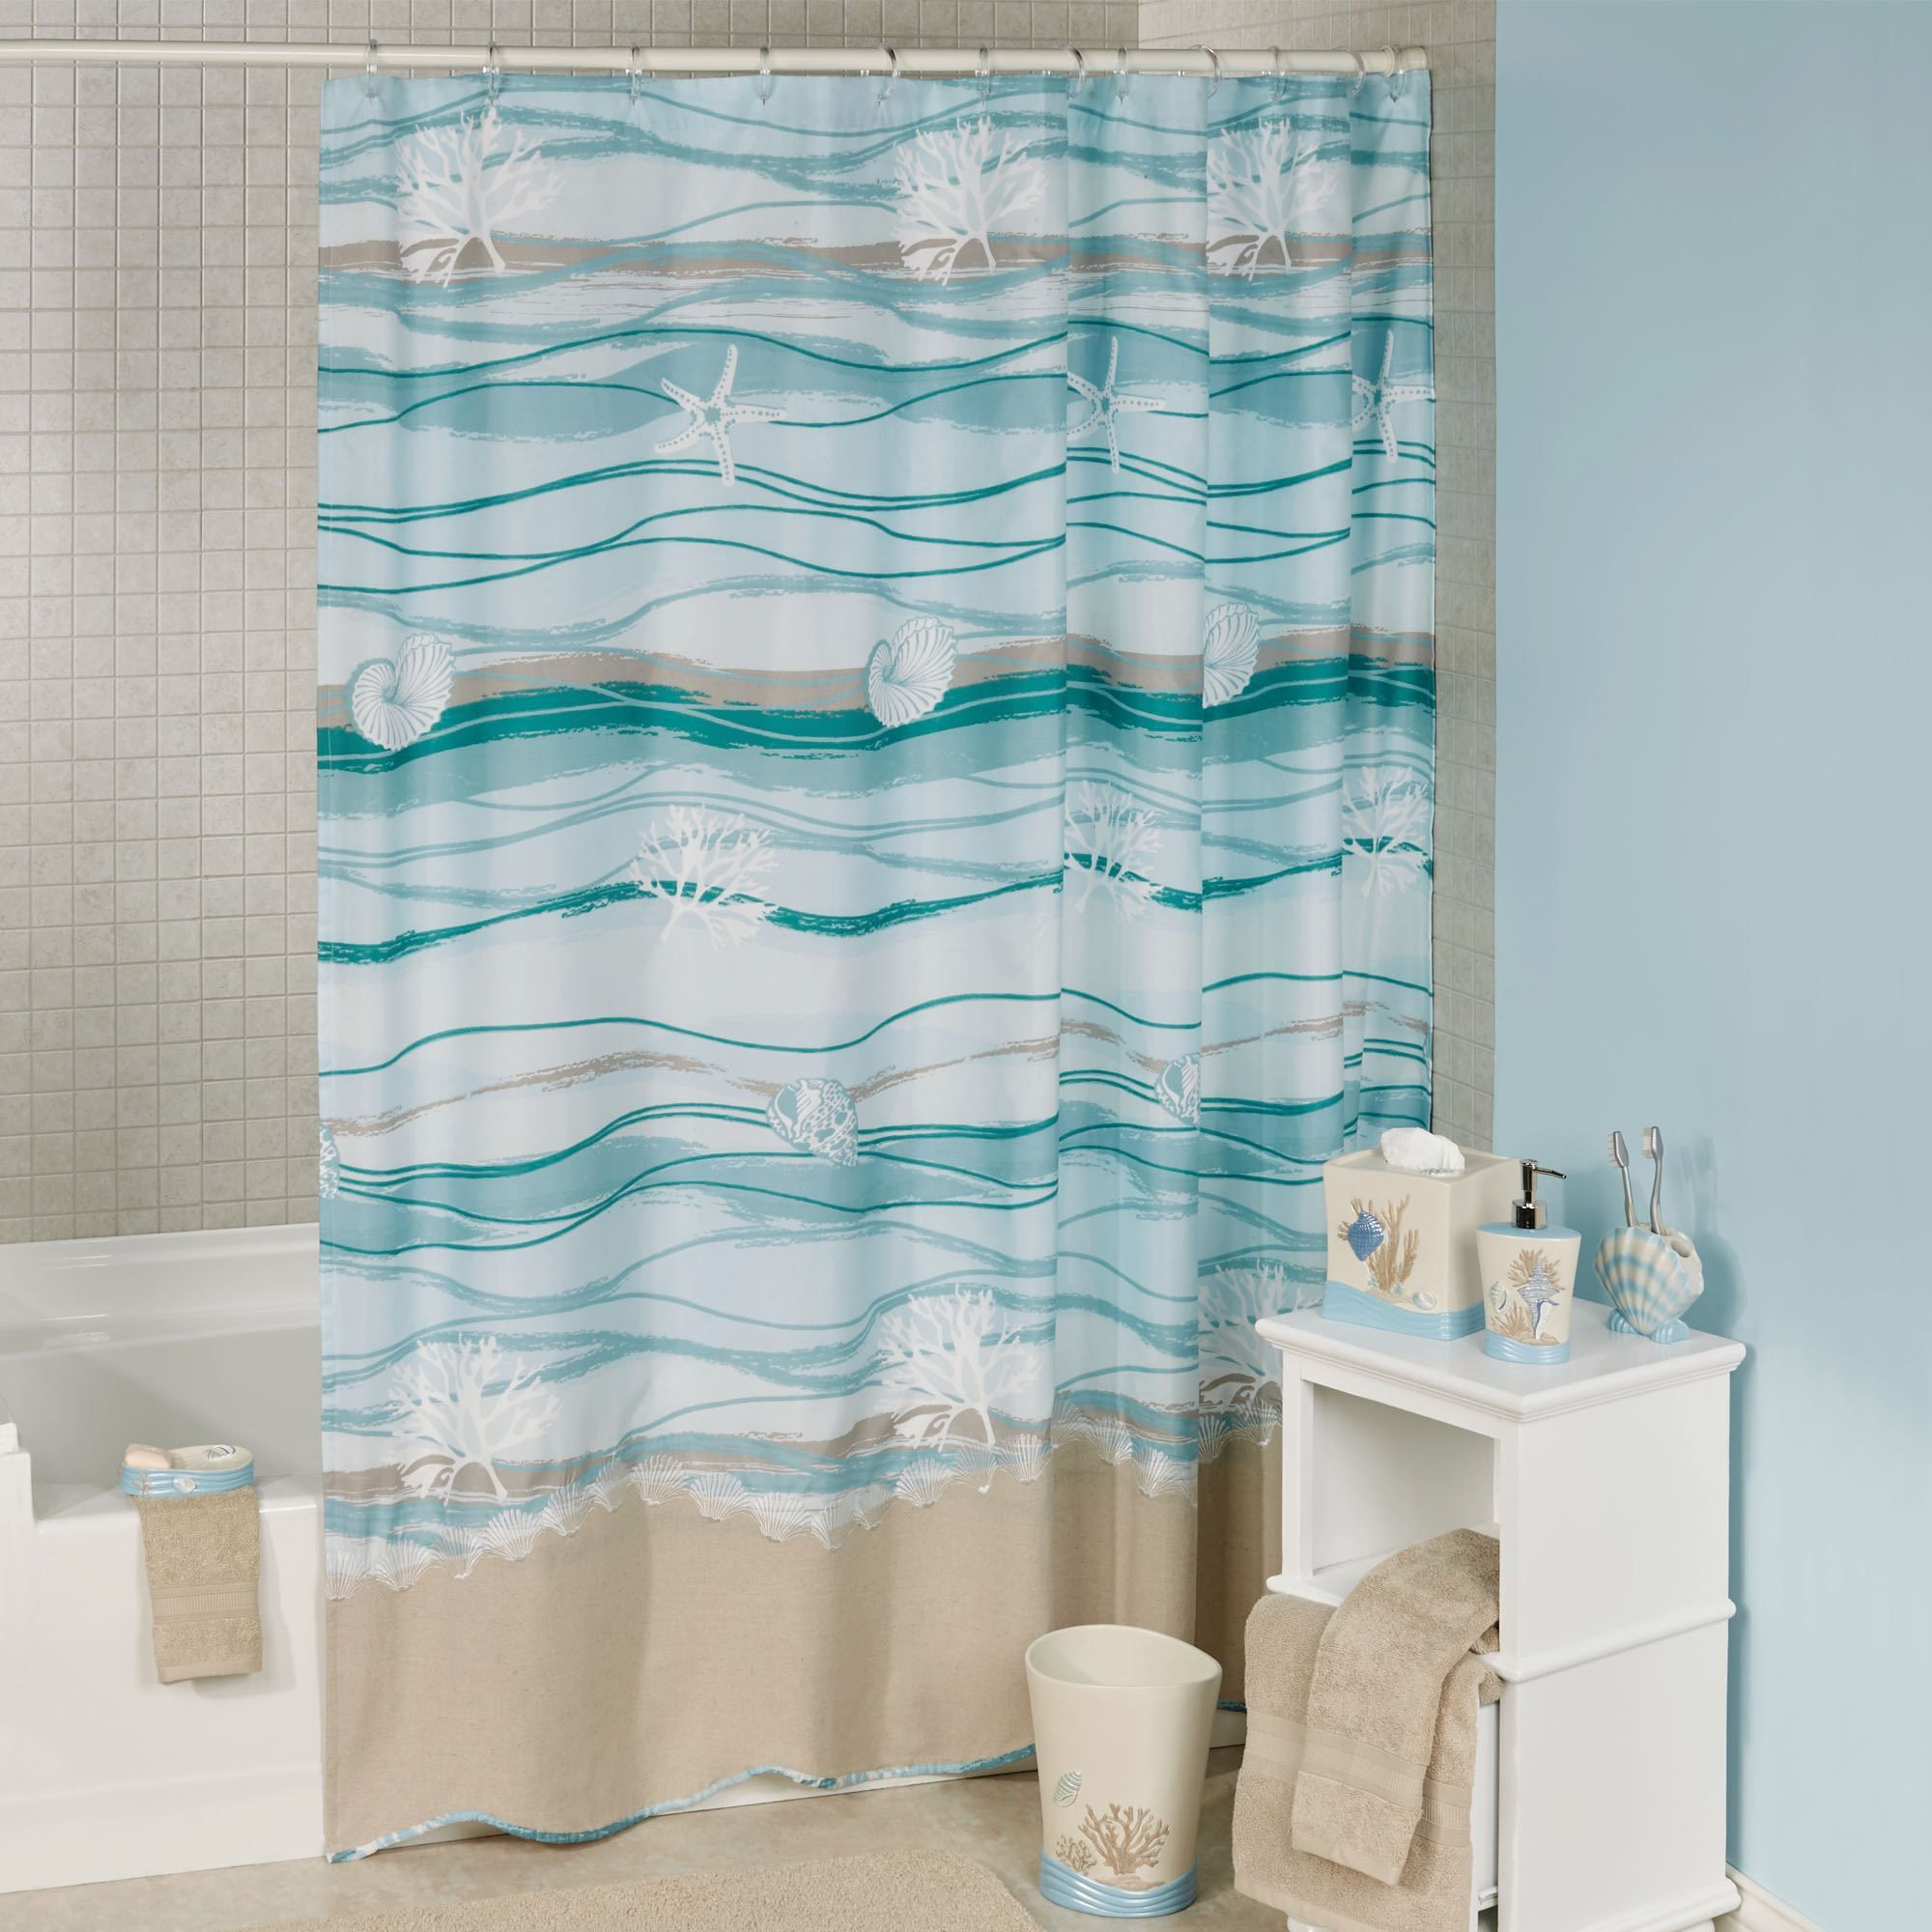 Seaview Wave Design Coastal Shower Curtain